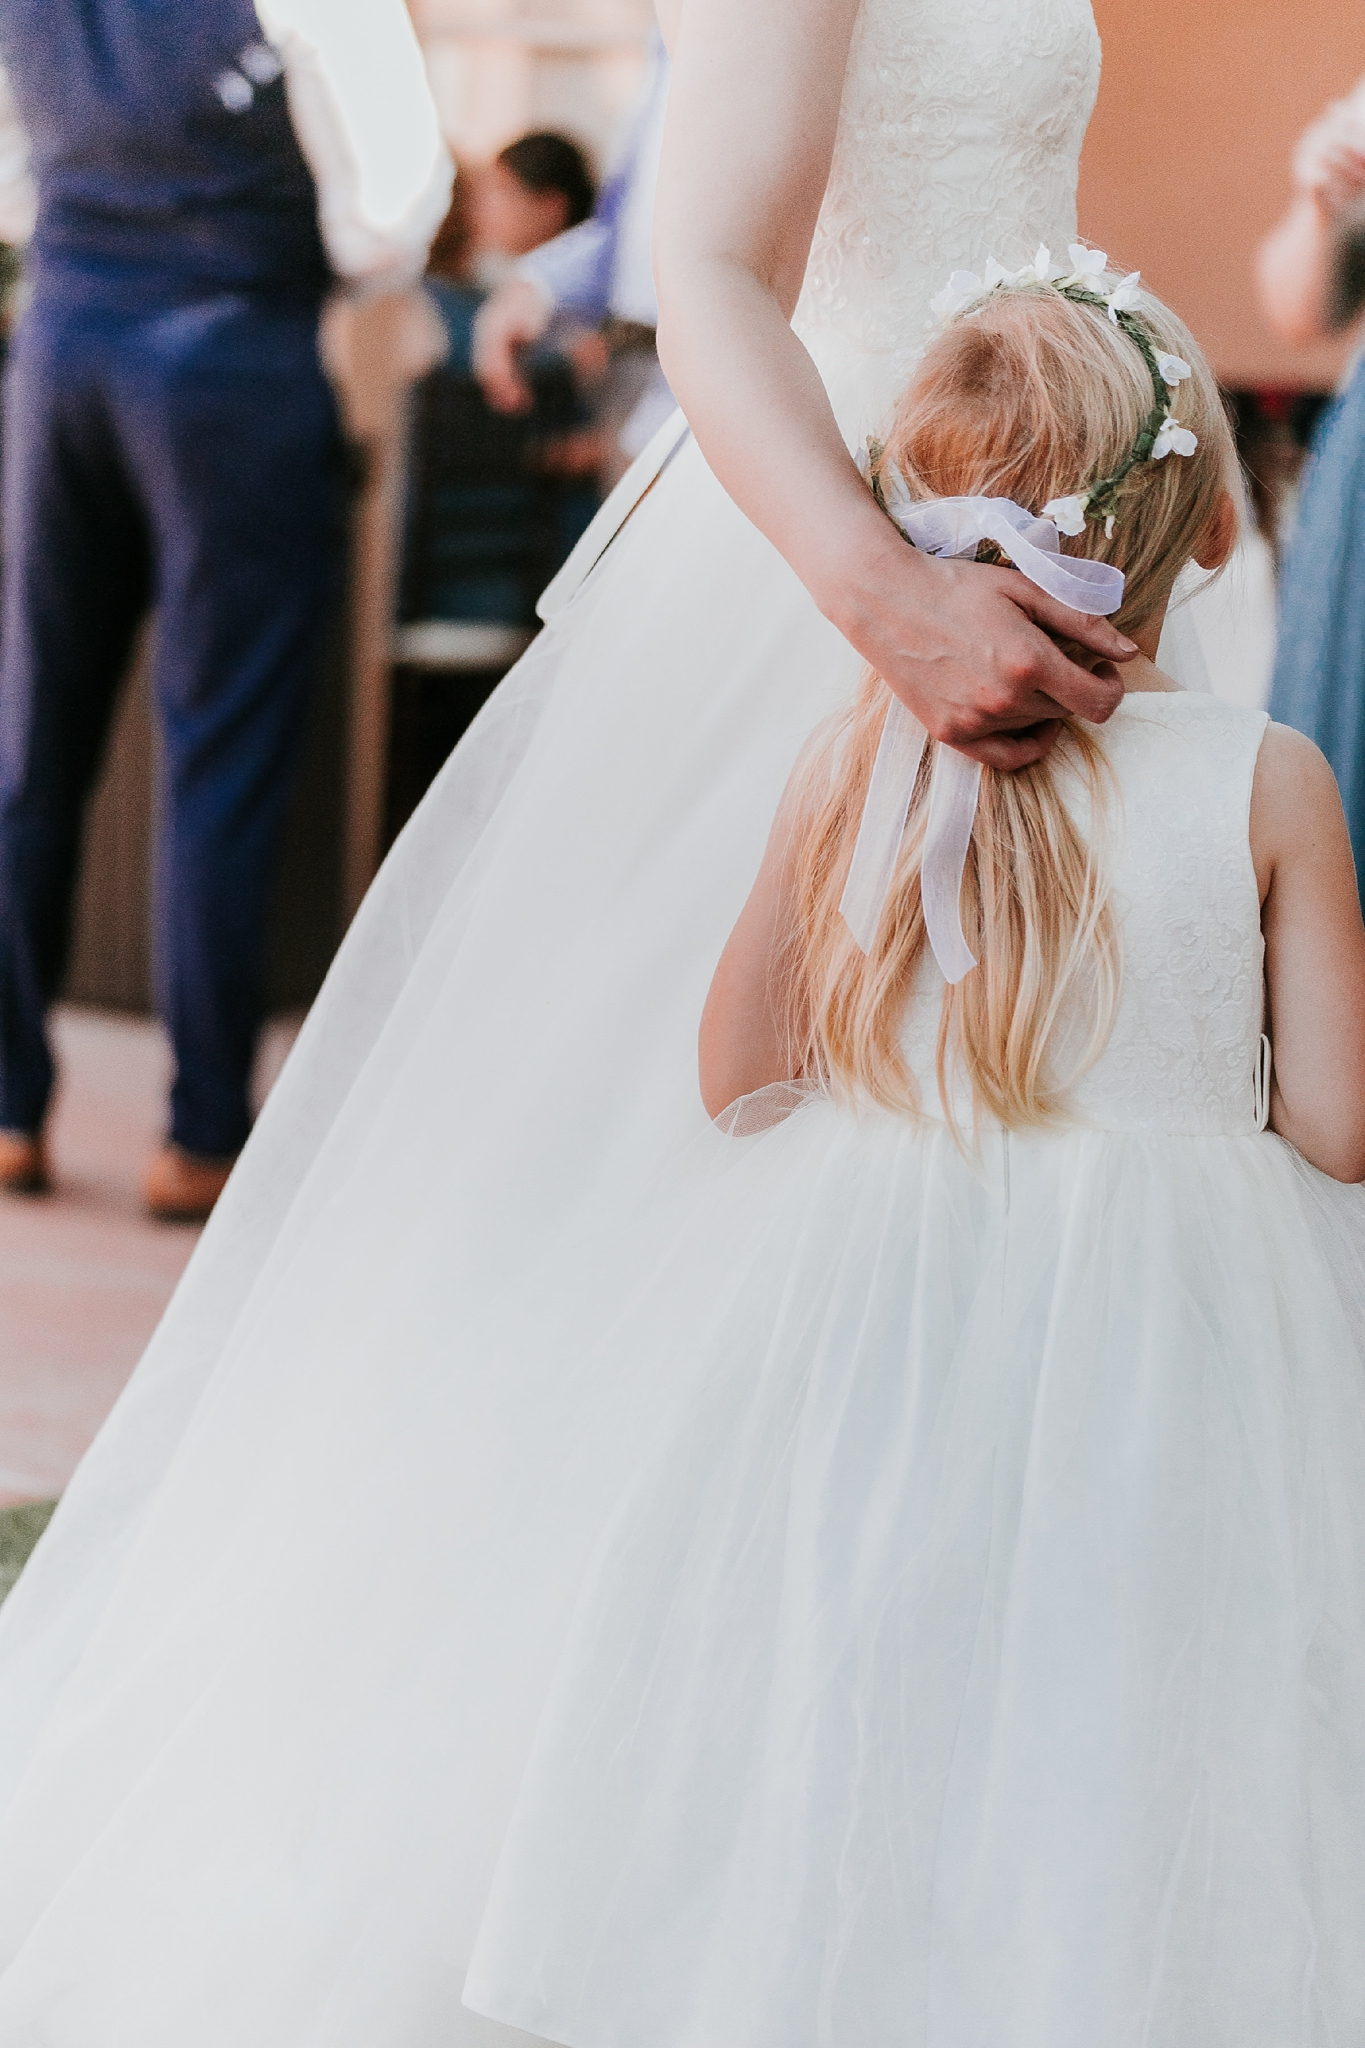 Alicia+lucia+photography+-+albuquerque+wedding+photographer+-+santa+fe+wedding+photography+-+new+mexico+wedding+photographer+-+new+mexico+wedding+-+flower+girl+-+wedding+flower+girl_0055.jpg